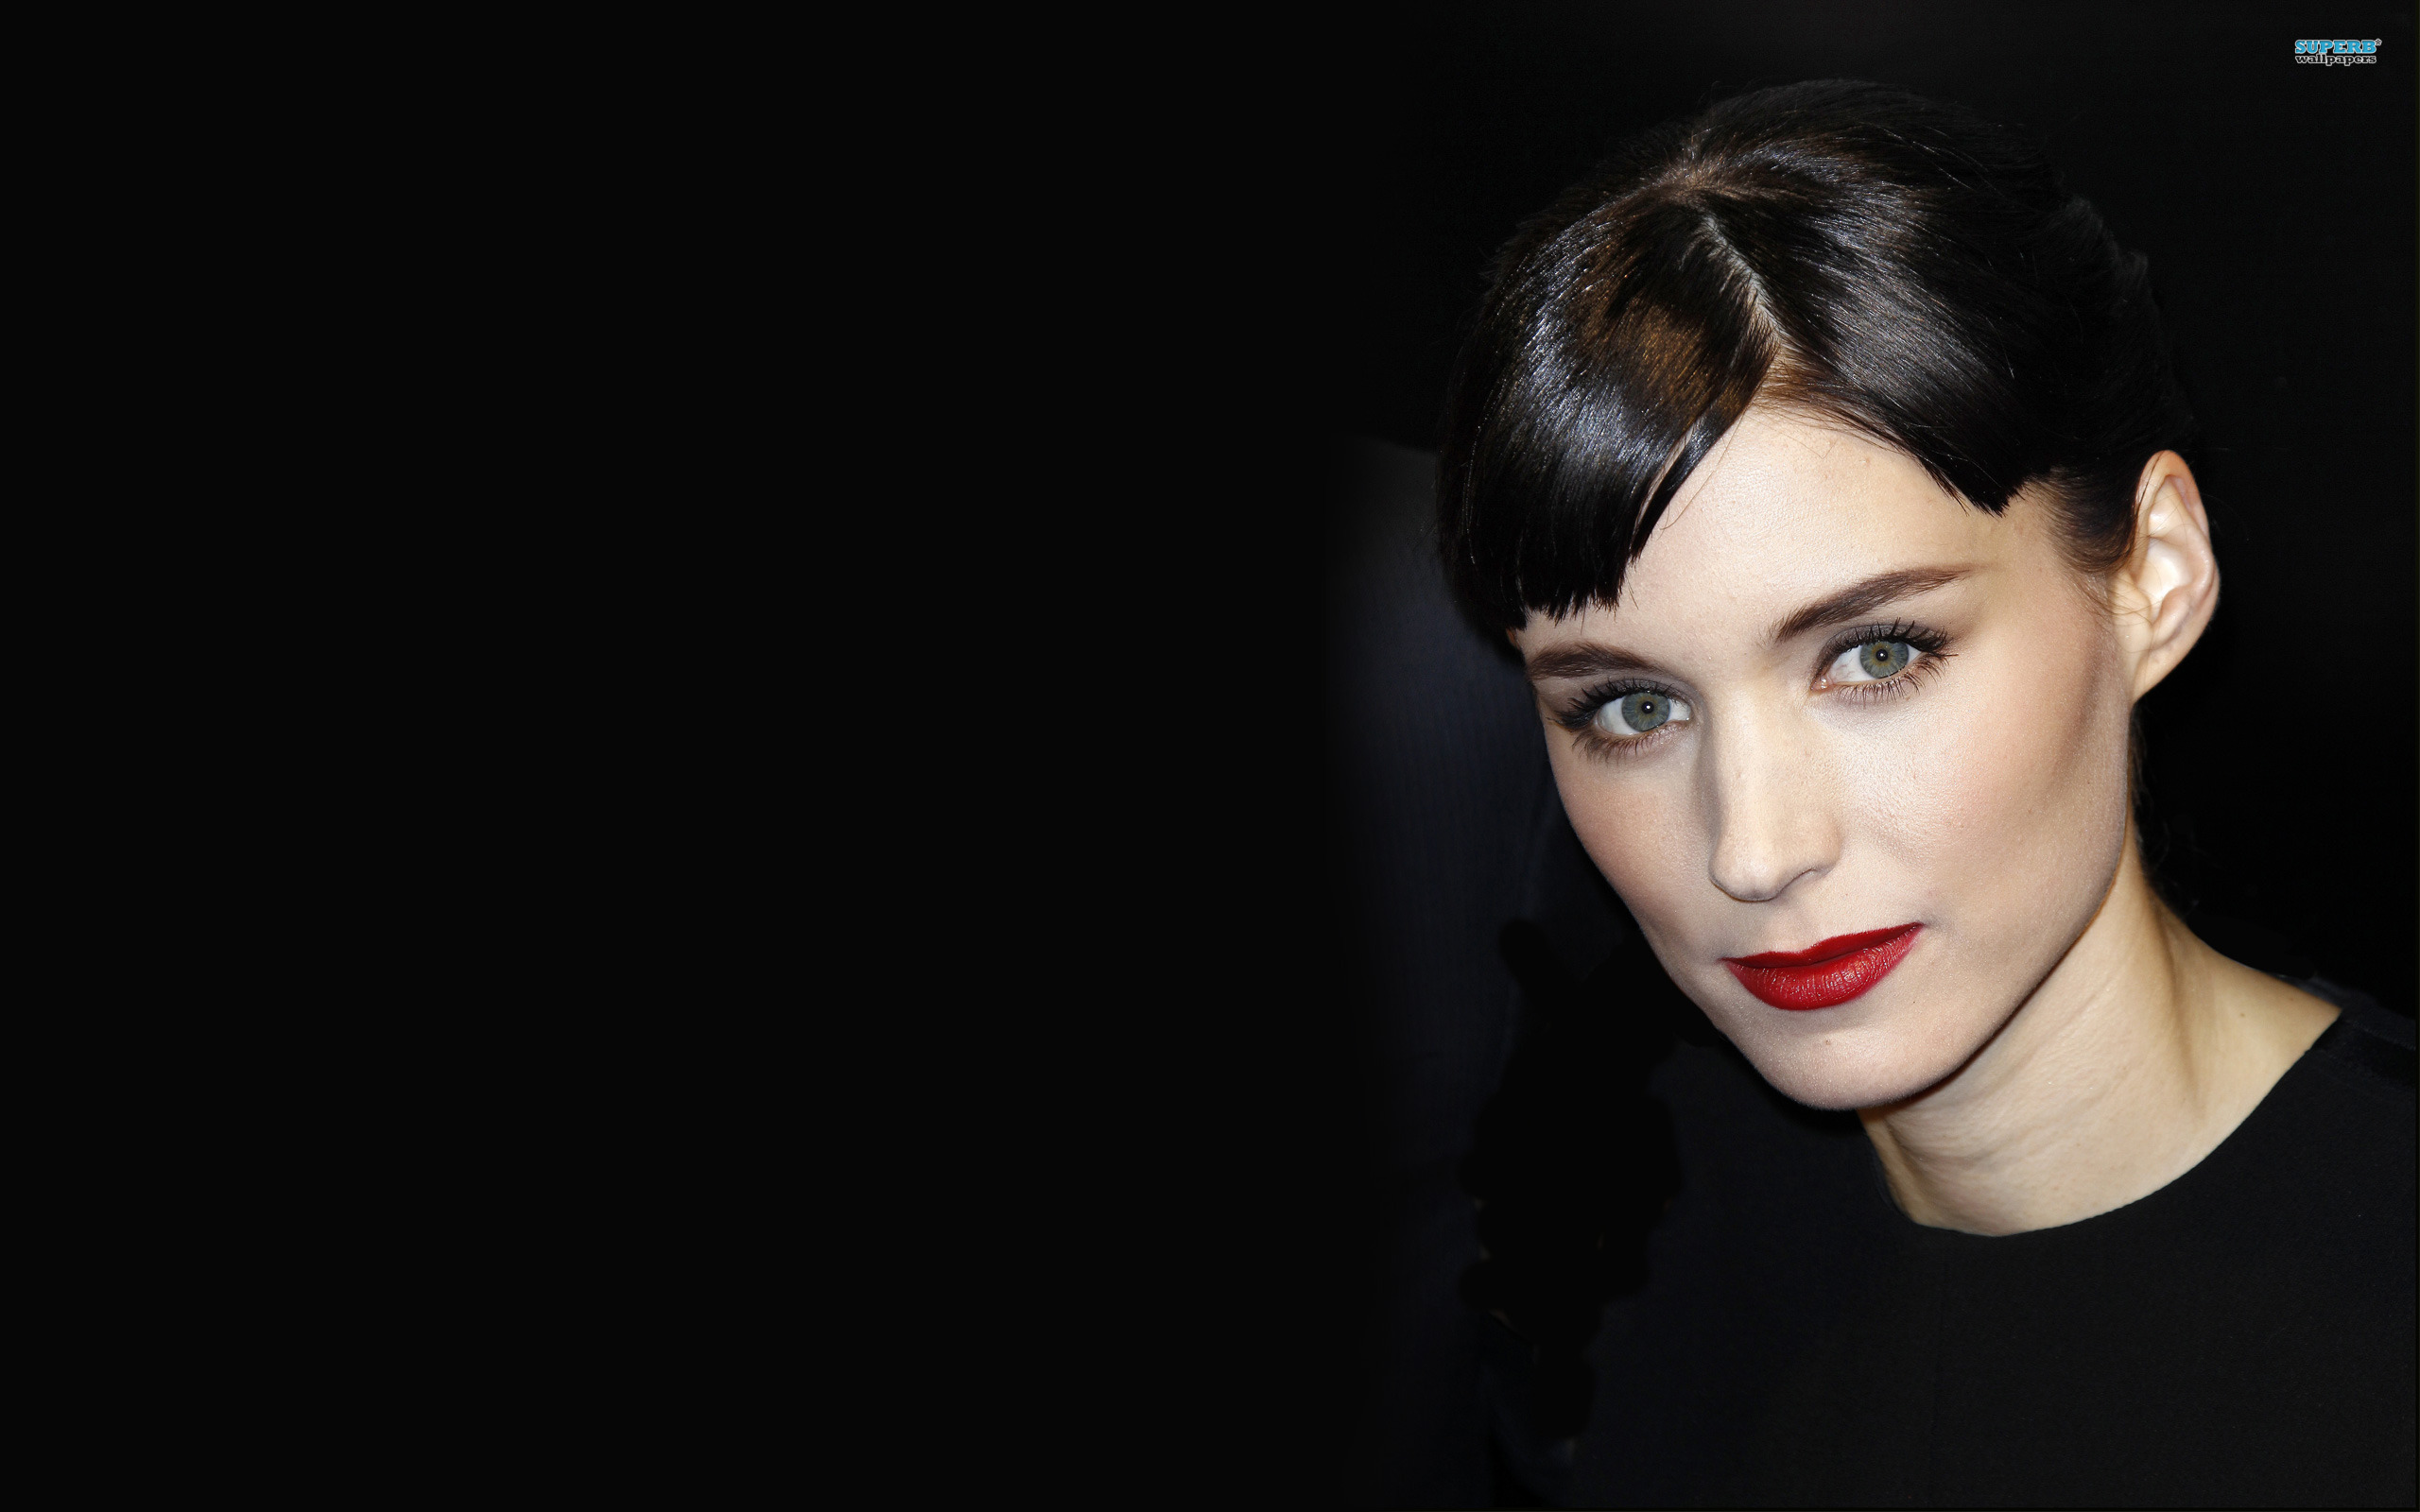 Rooney Mara wallpaper 2560x1600 jpg